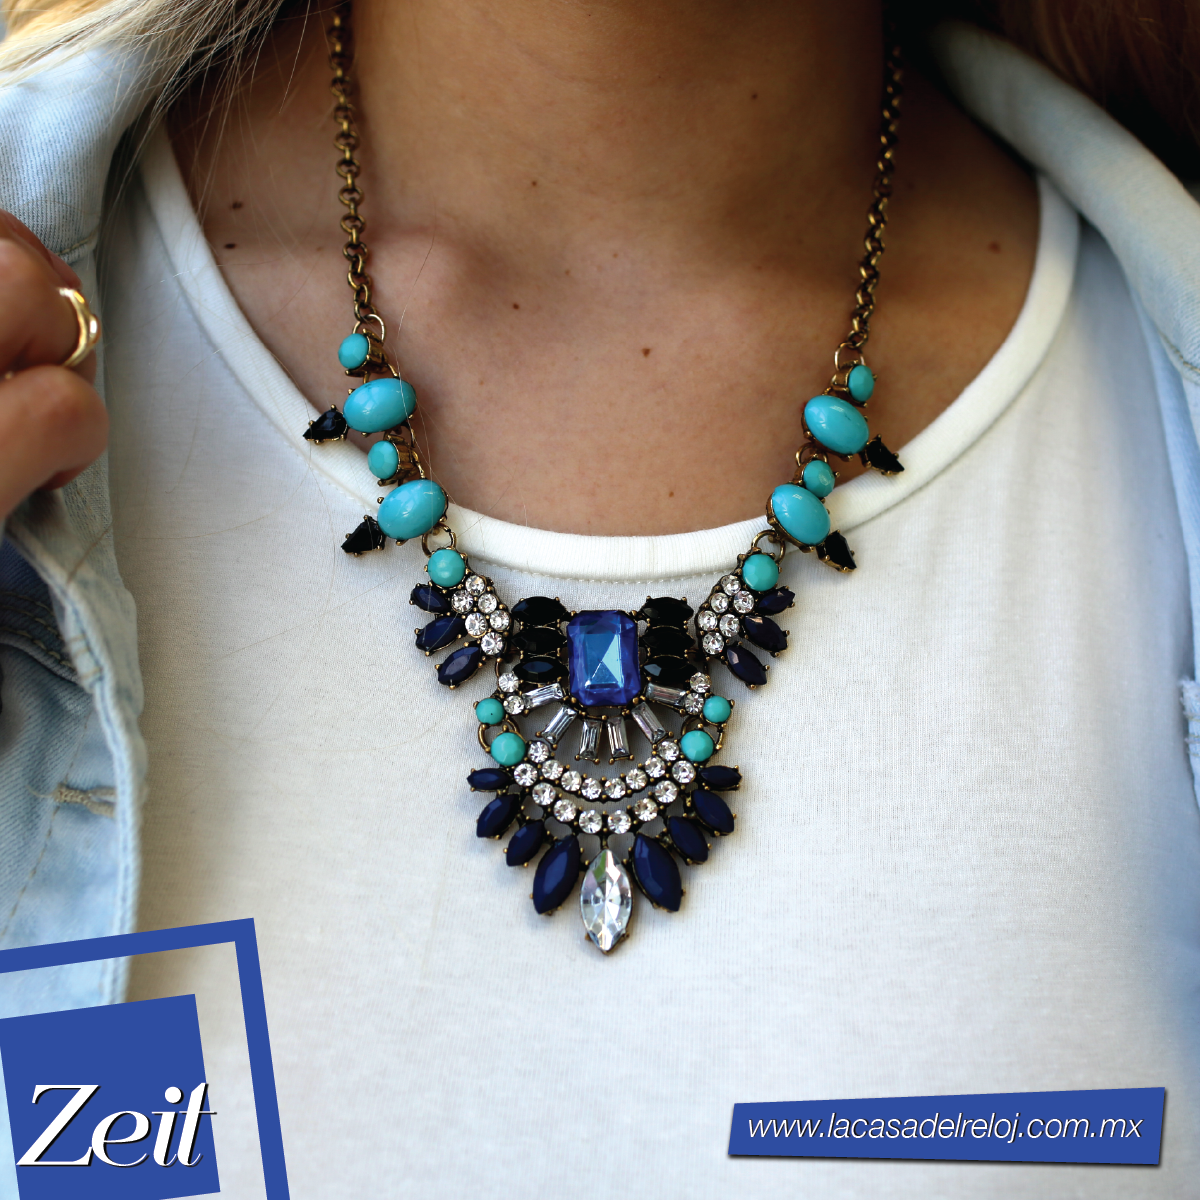 #Outfit #Zeit #Moda #Accesorios #oodt #neclace #gold #trends #2015trends #fashion #style #blue #necklace #tendencias #collar